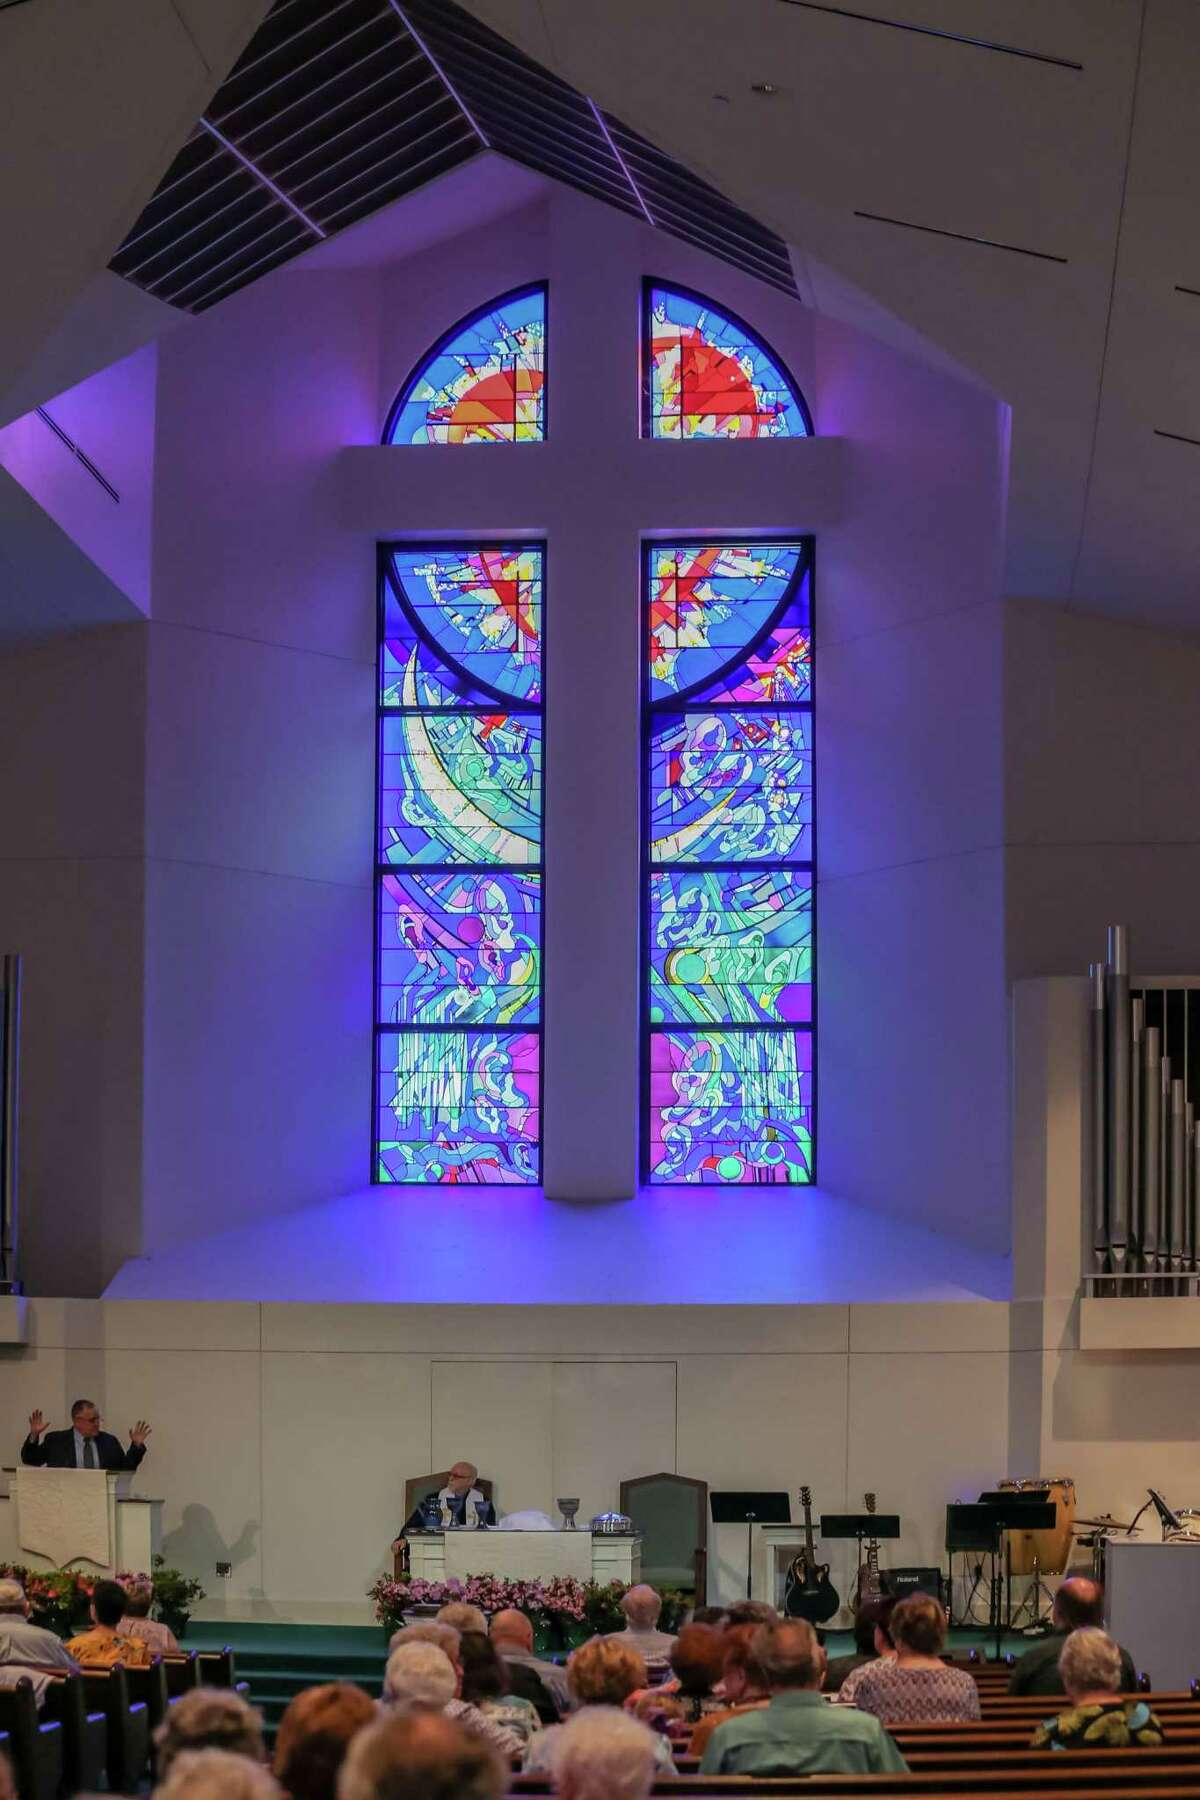 The main stained glass window in the sanctuary of the Webster Presbyterian Church near NASA, depicts U.S. space missions to the moon. It is shown here on April 7, 2019.